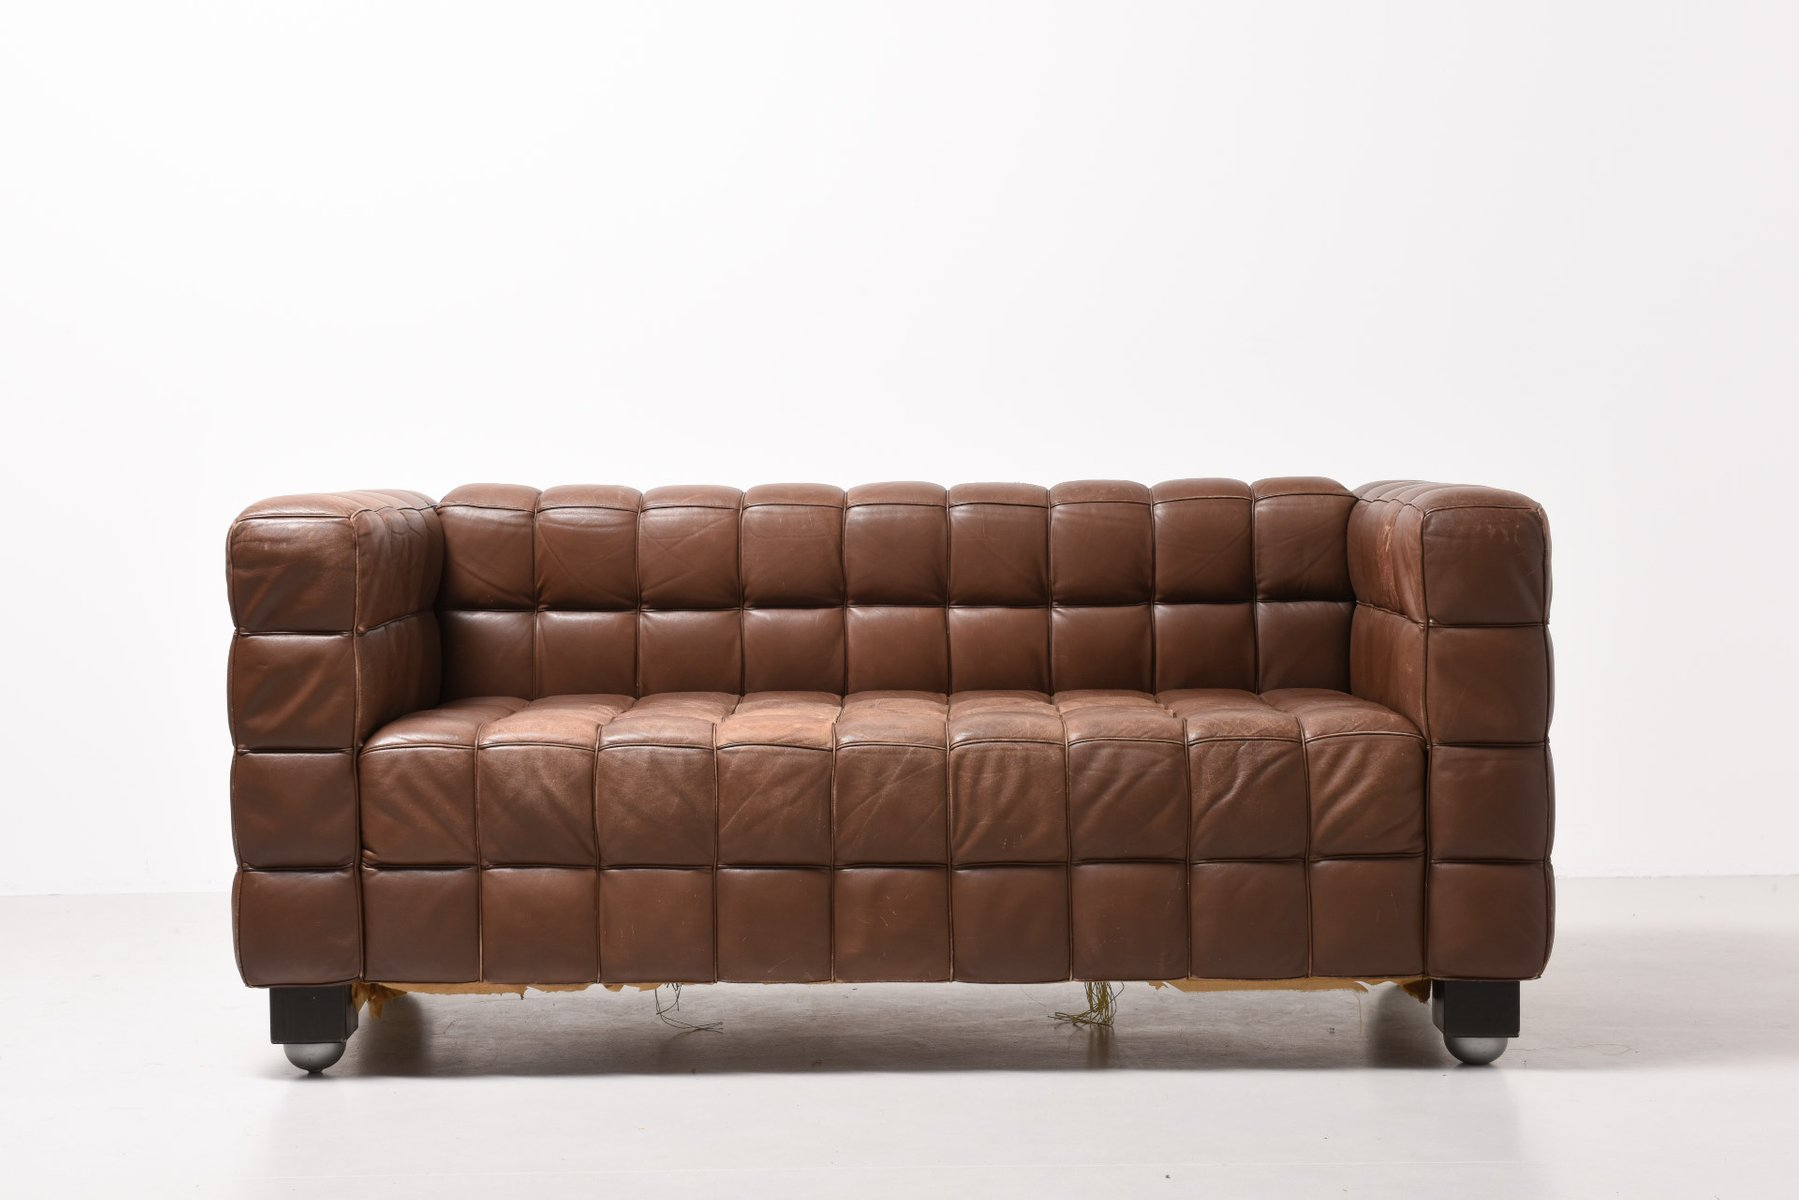 Elegant Kubus Brown Leather Sofa By Josef Hoffmann For Wittmann, 1910s For Sale At  Pamono